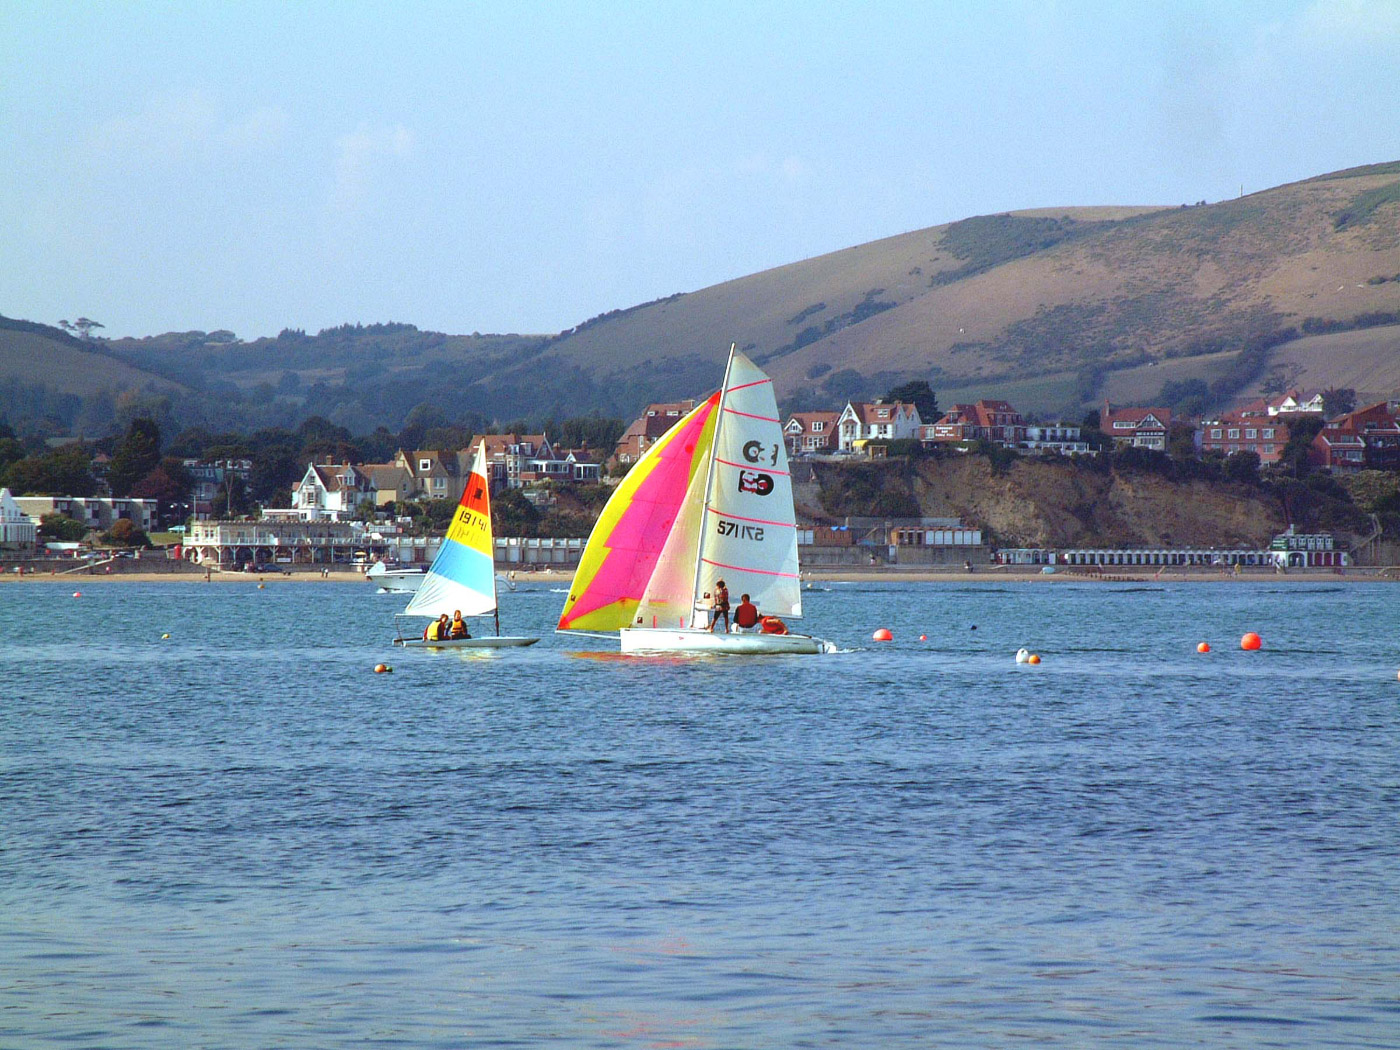 Sailing in Swanage Bay